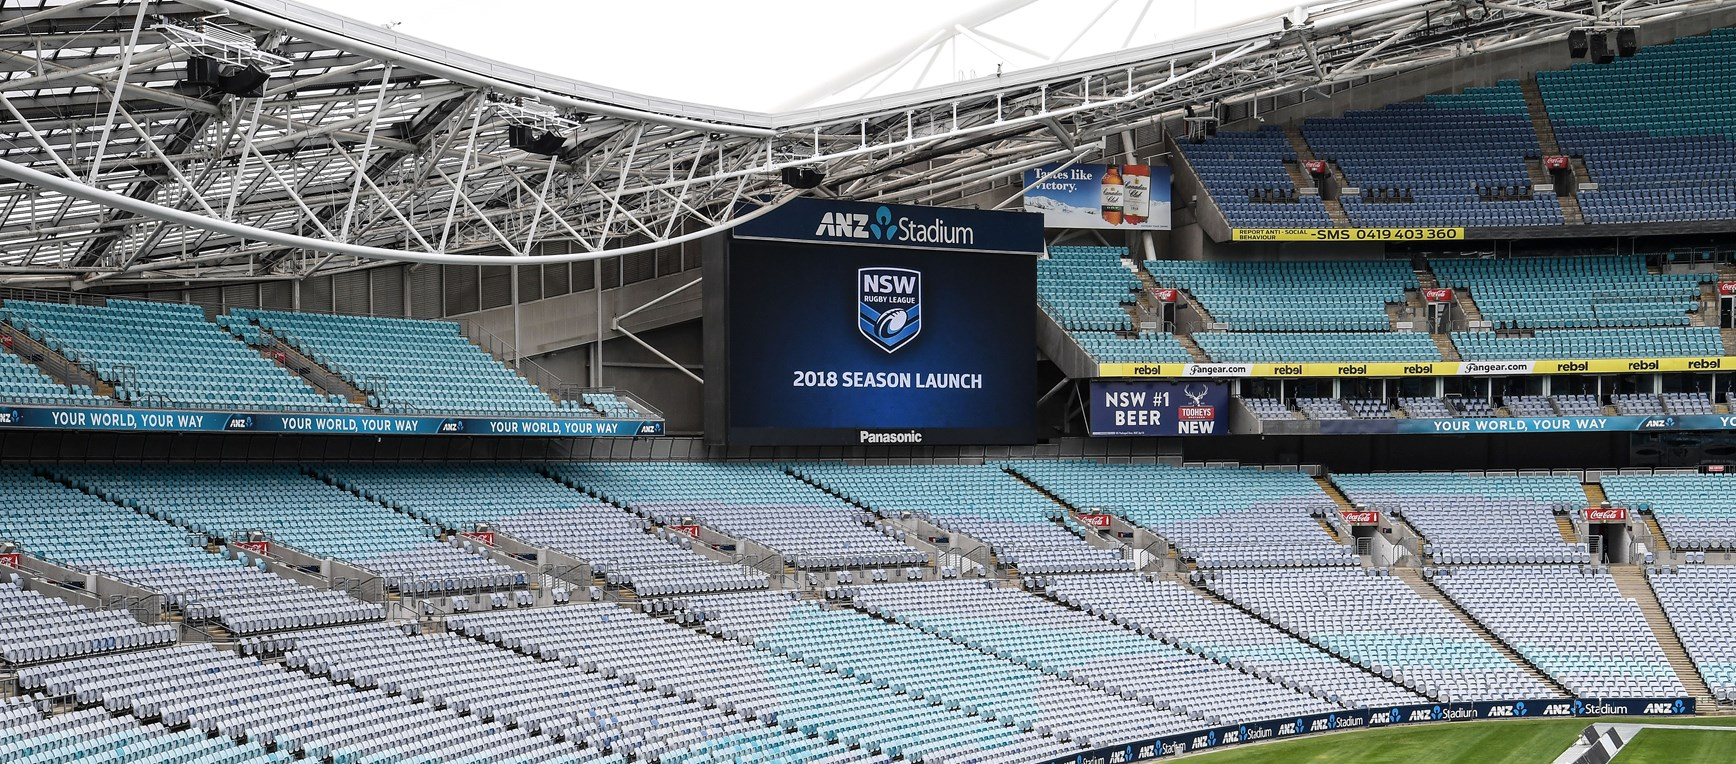 GALLERY | NSWRL 2018 Season Launch